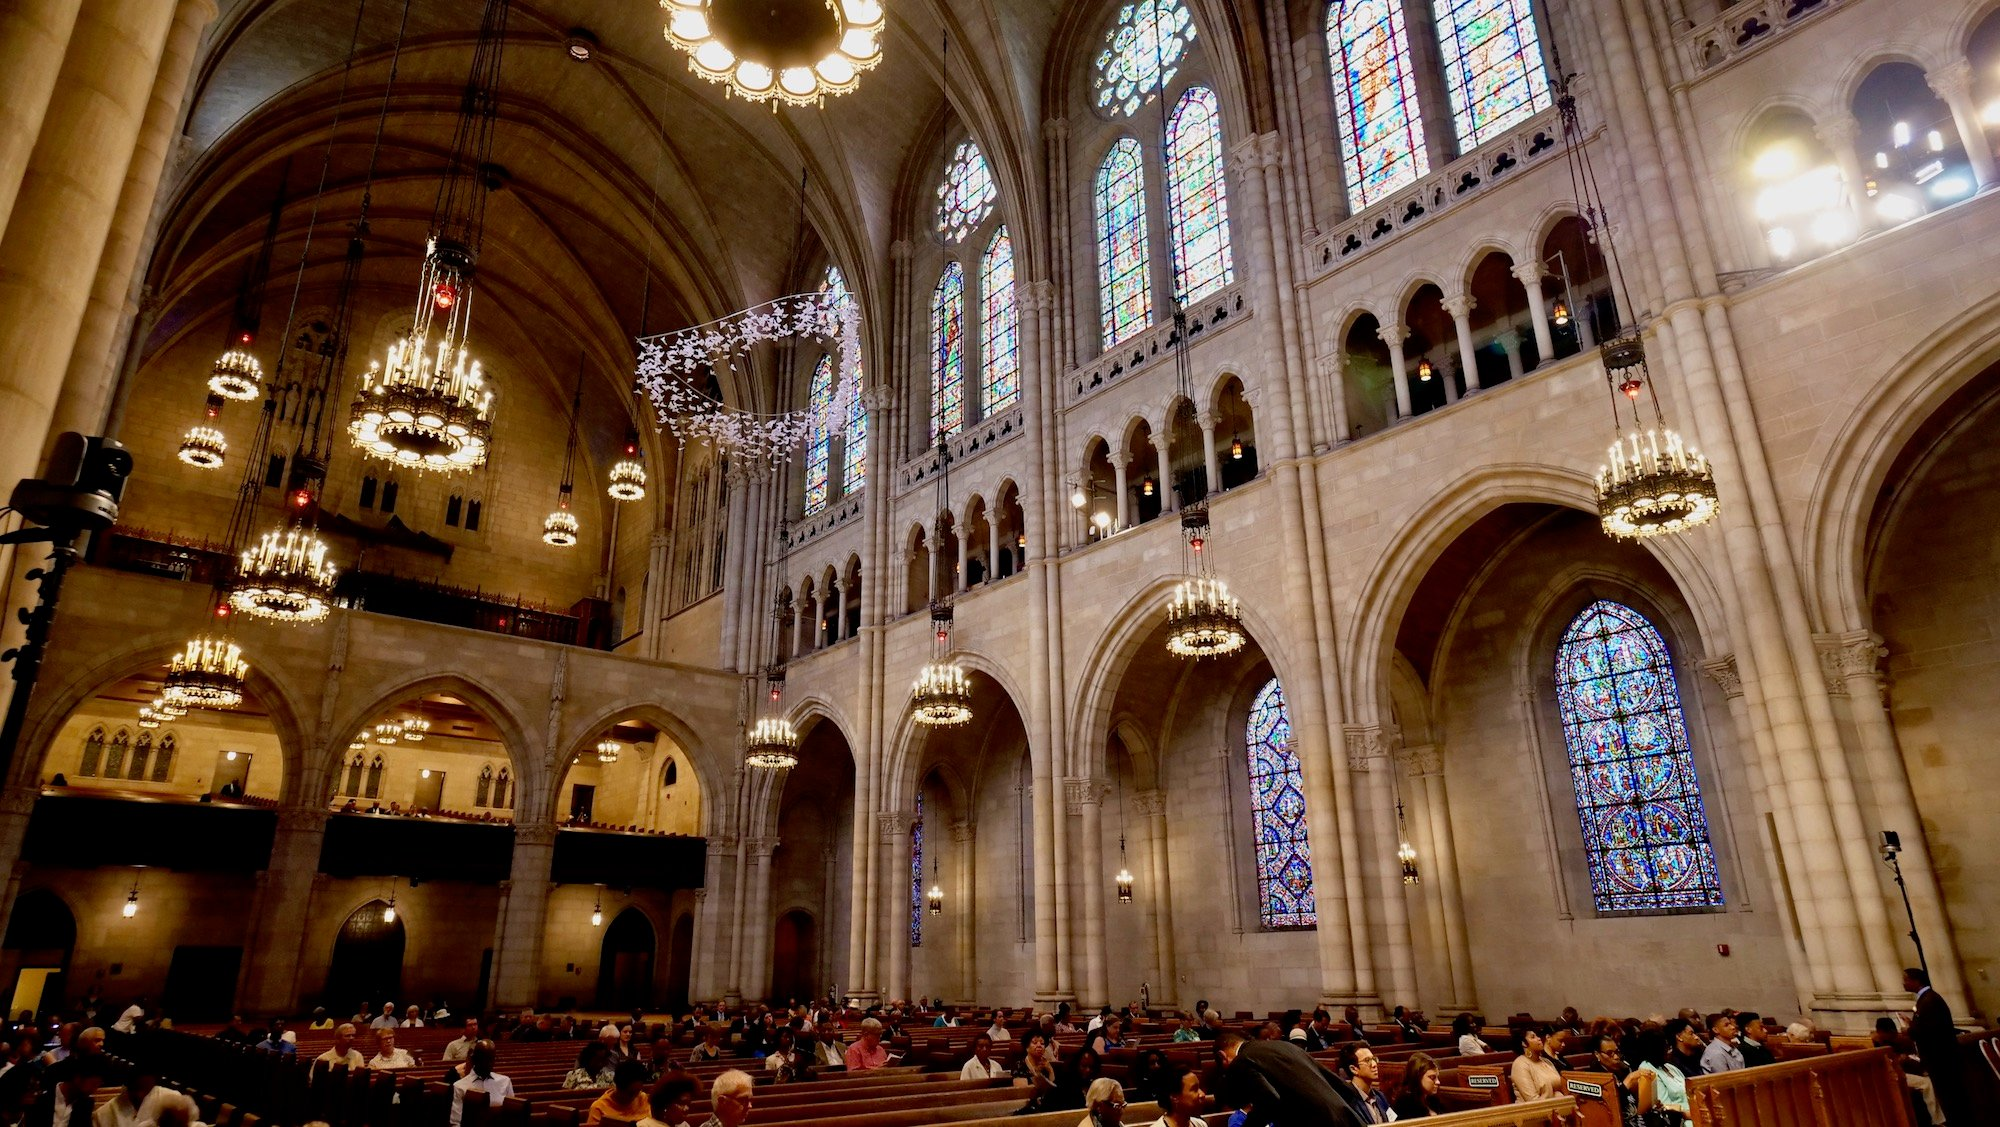 riverside church, morningside heights, nyc history